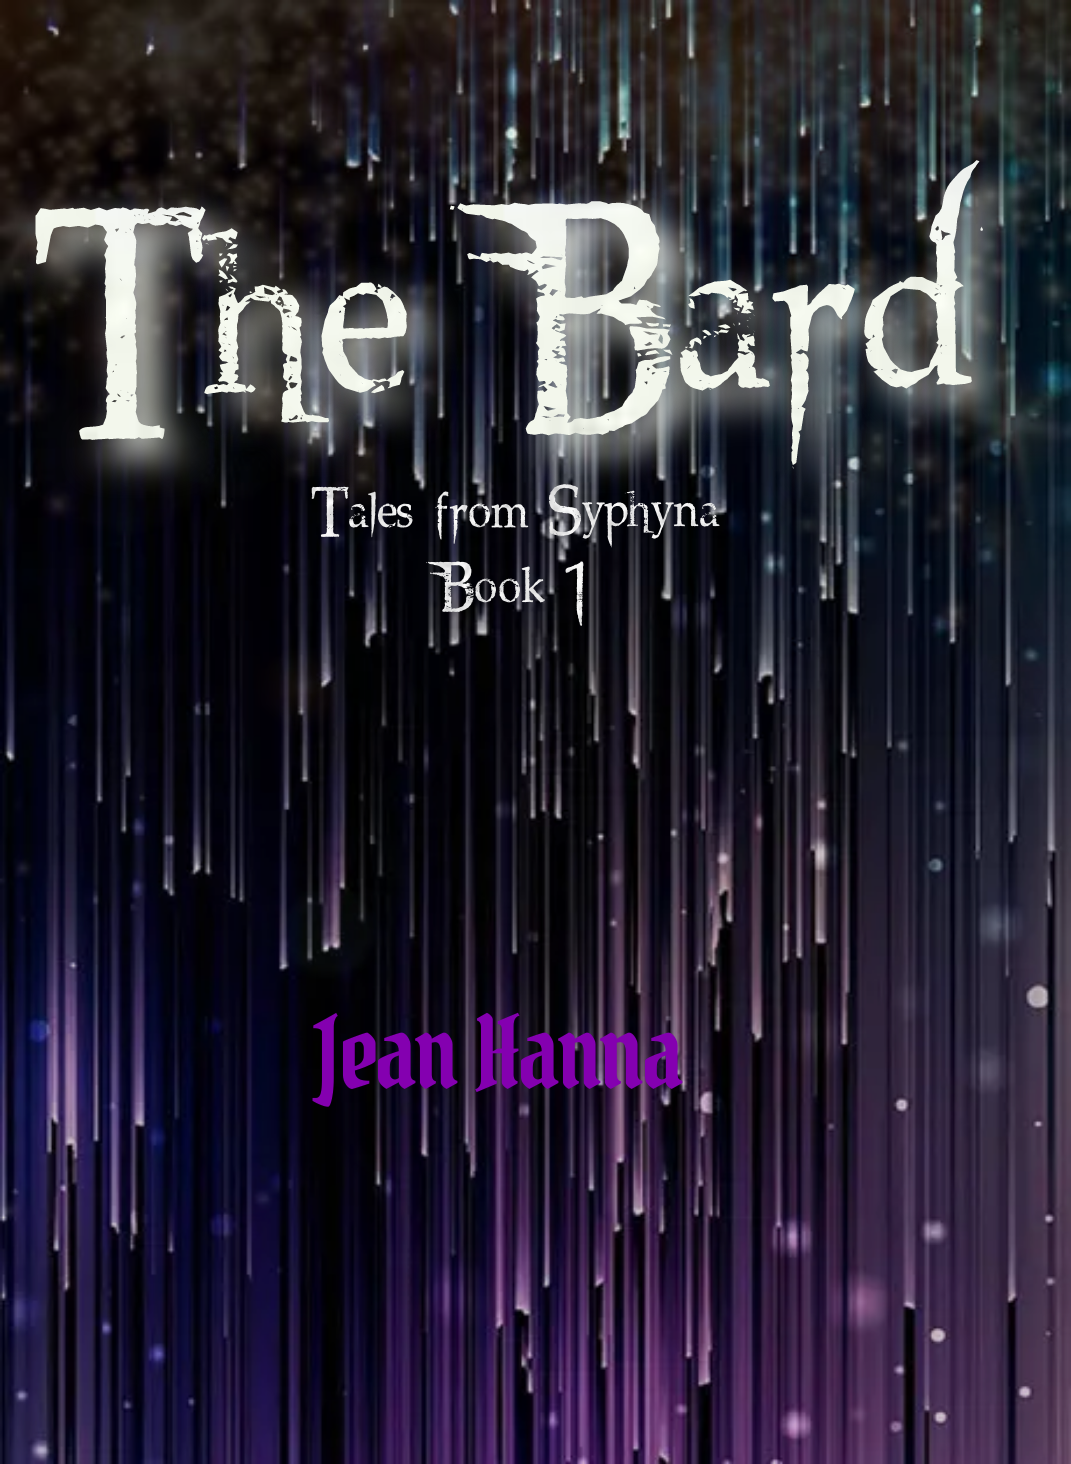 The Bard: Tales from Syphyna Book 1 by Jean Hanna